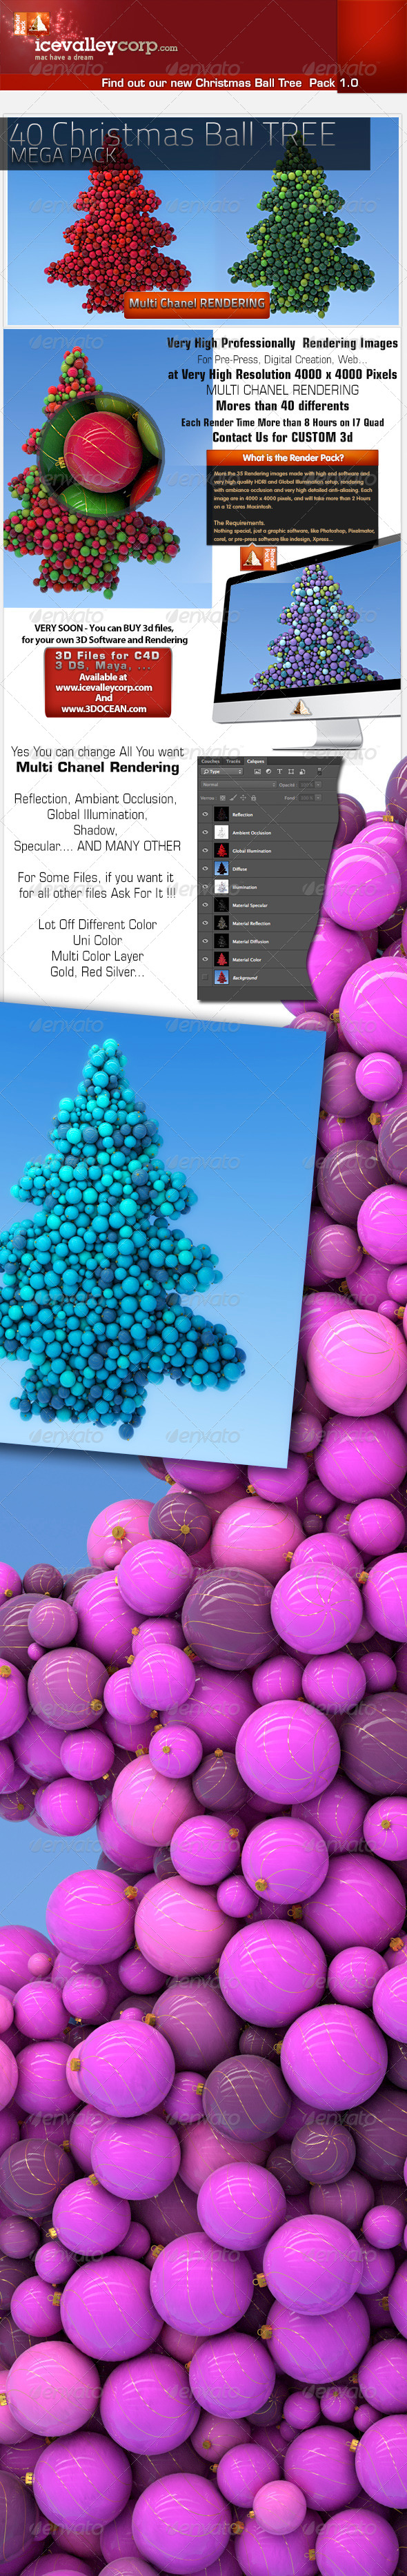 GraphicRiver 40 Hires Christmas Balls Tree 4000 Pxl 6162592